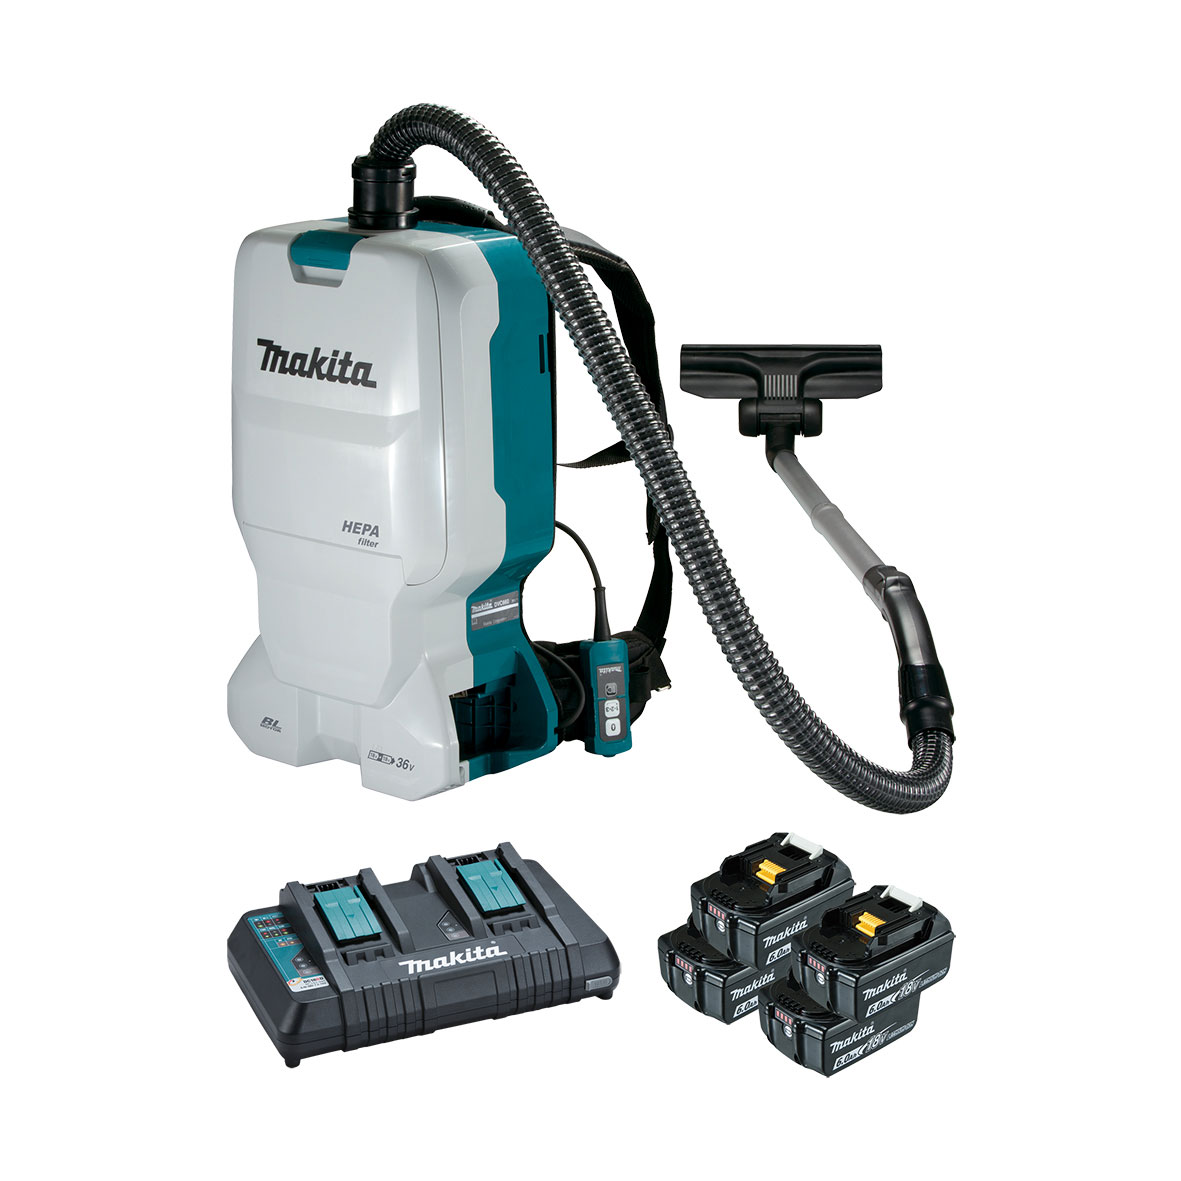 Makita 18Vx2 Brushless Backpack Vacuum Kit supplied with 4x 6.0Ah batteries & dual port charger - DVC660G4X1